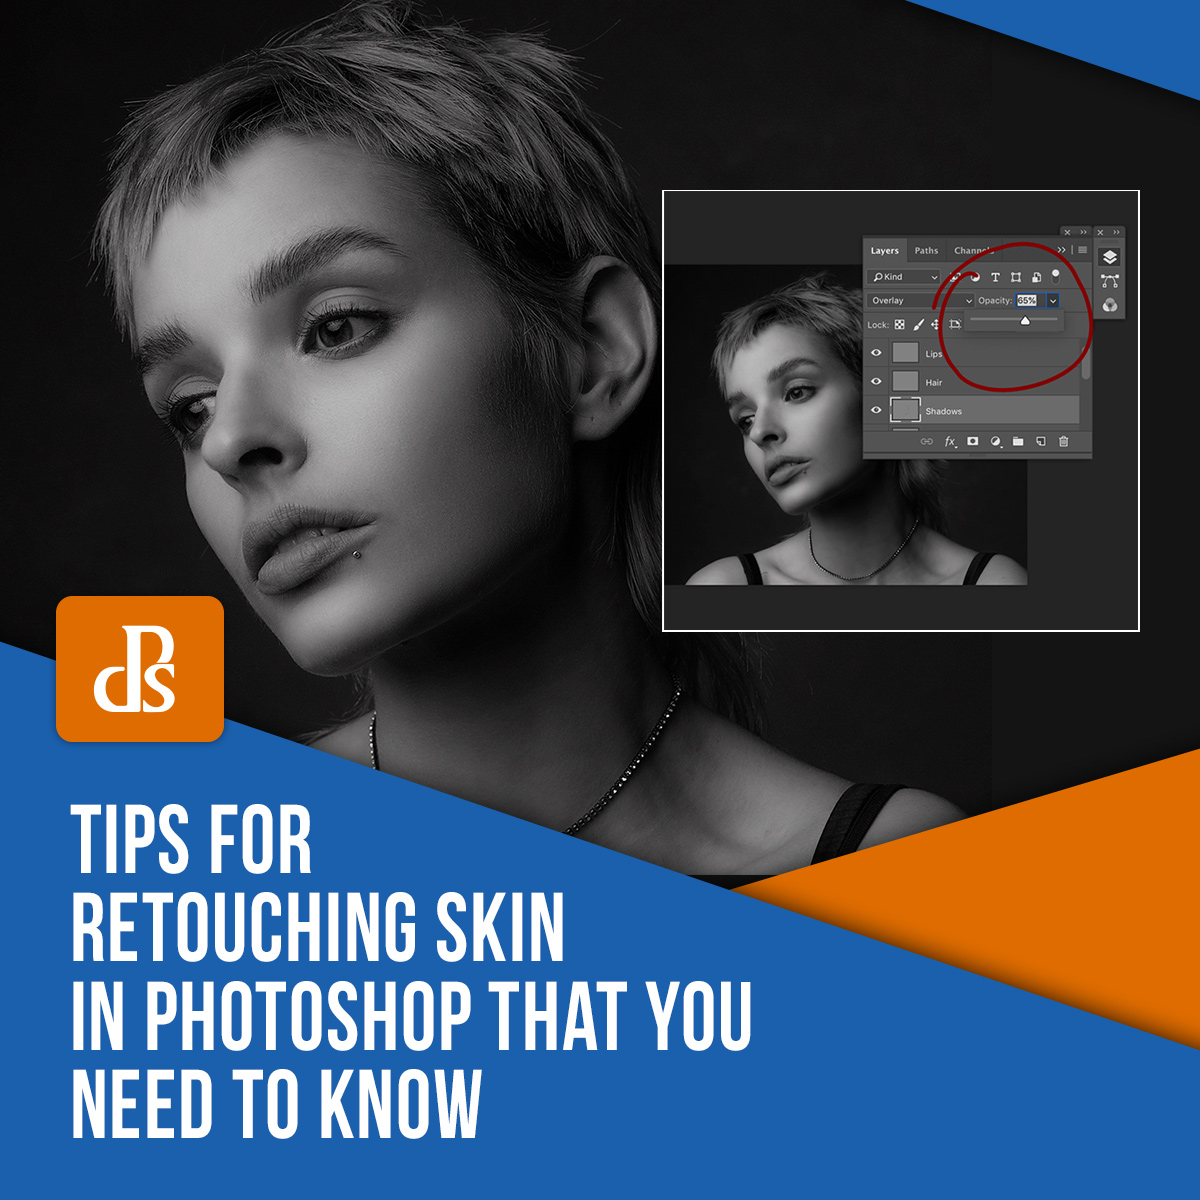 tips-for-retouching-skin-in-photoshop